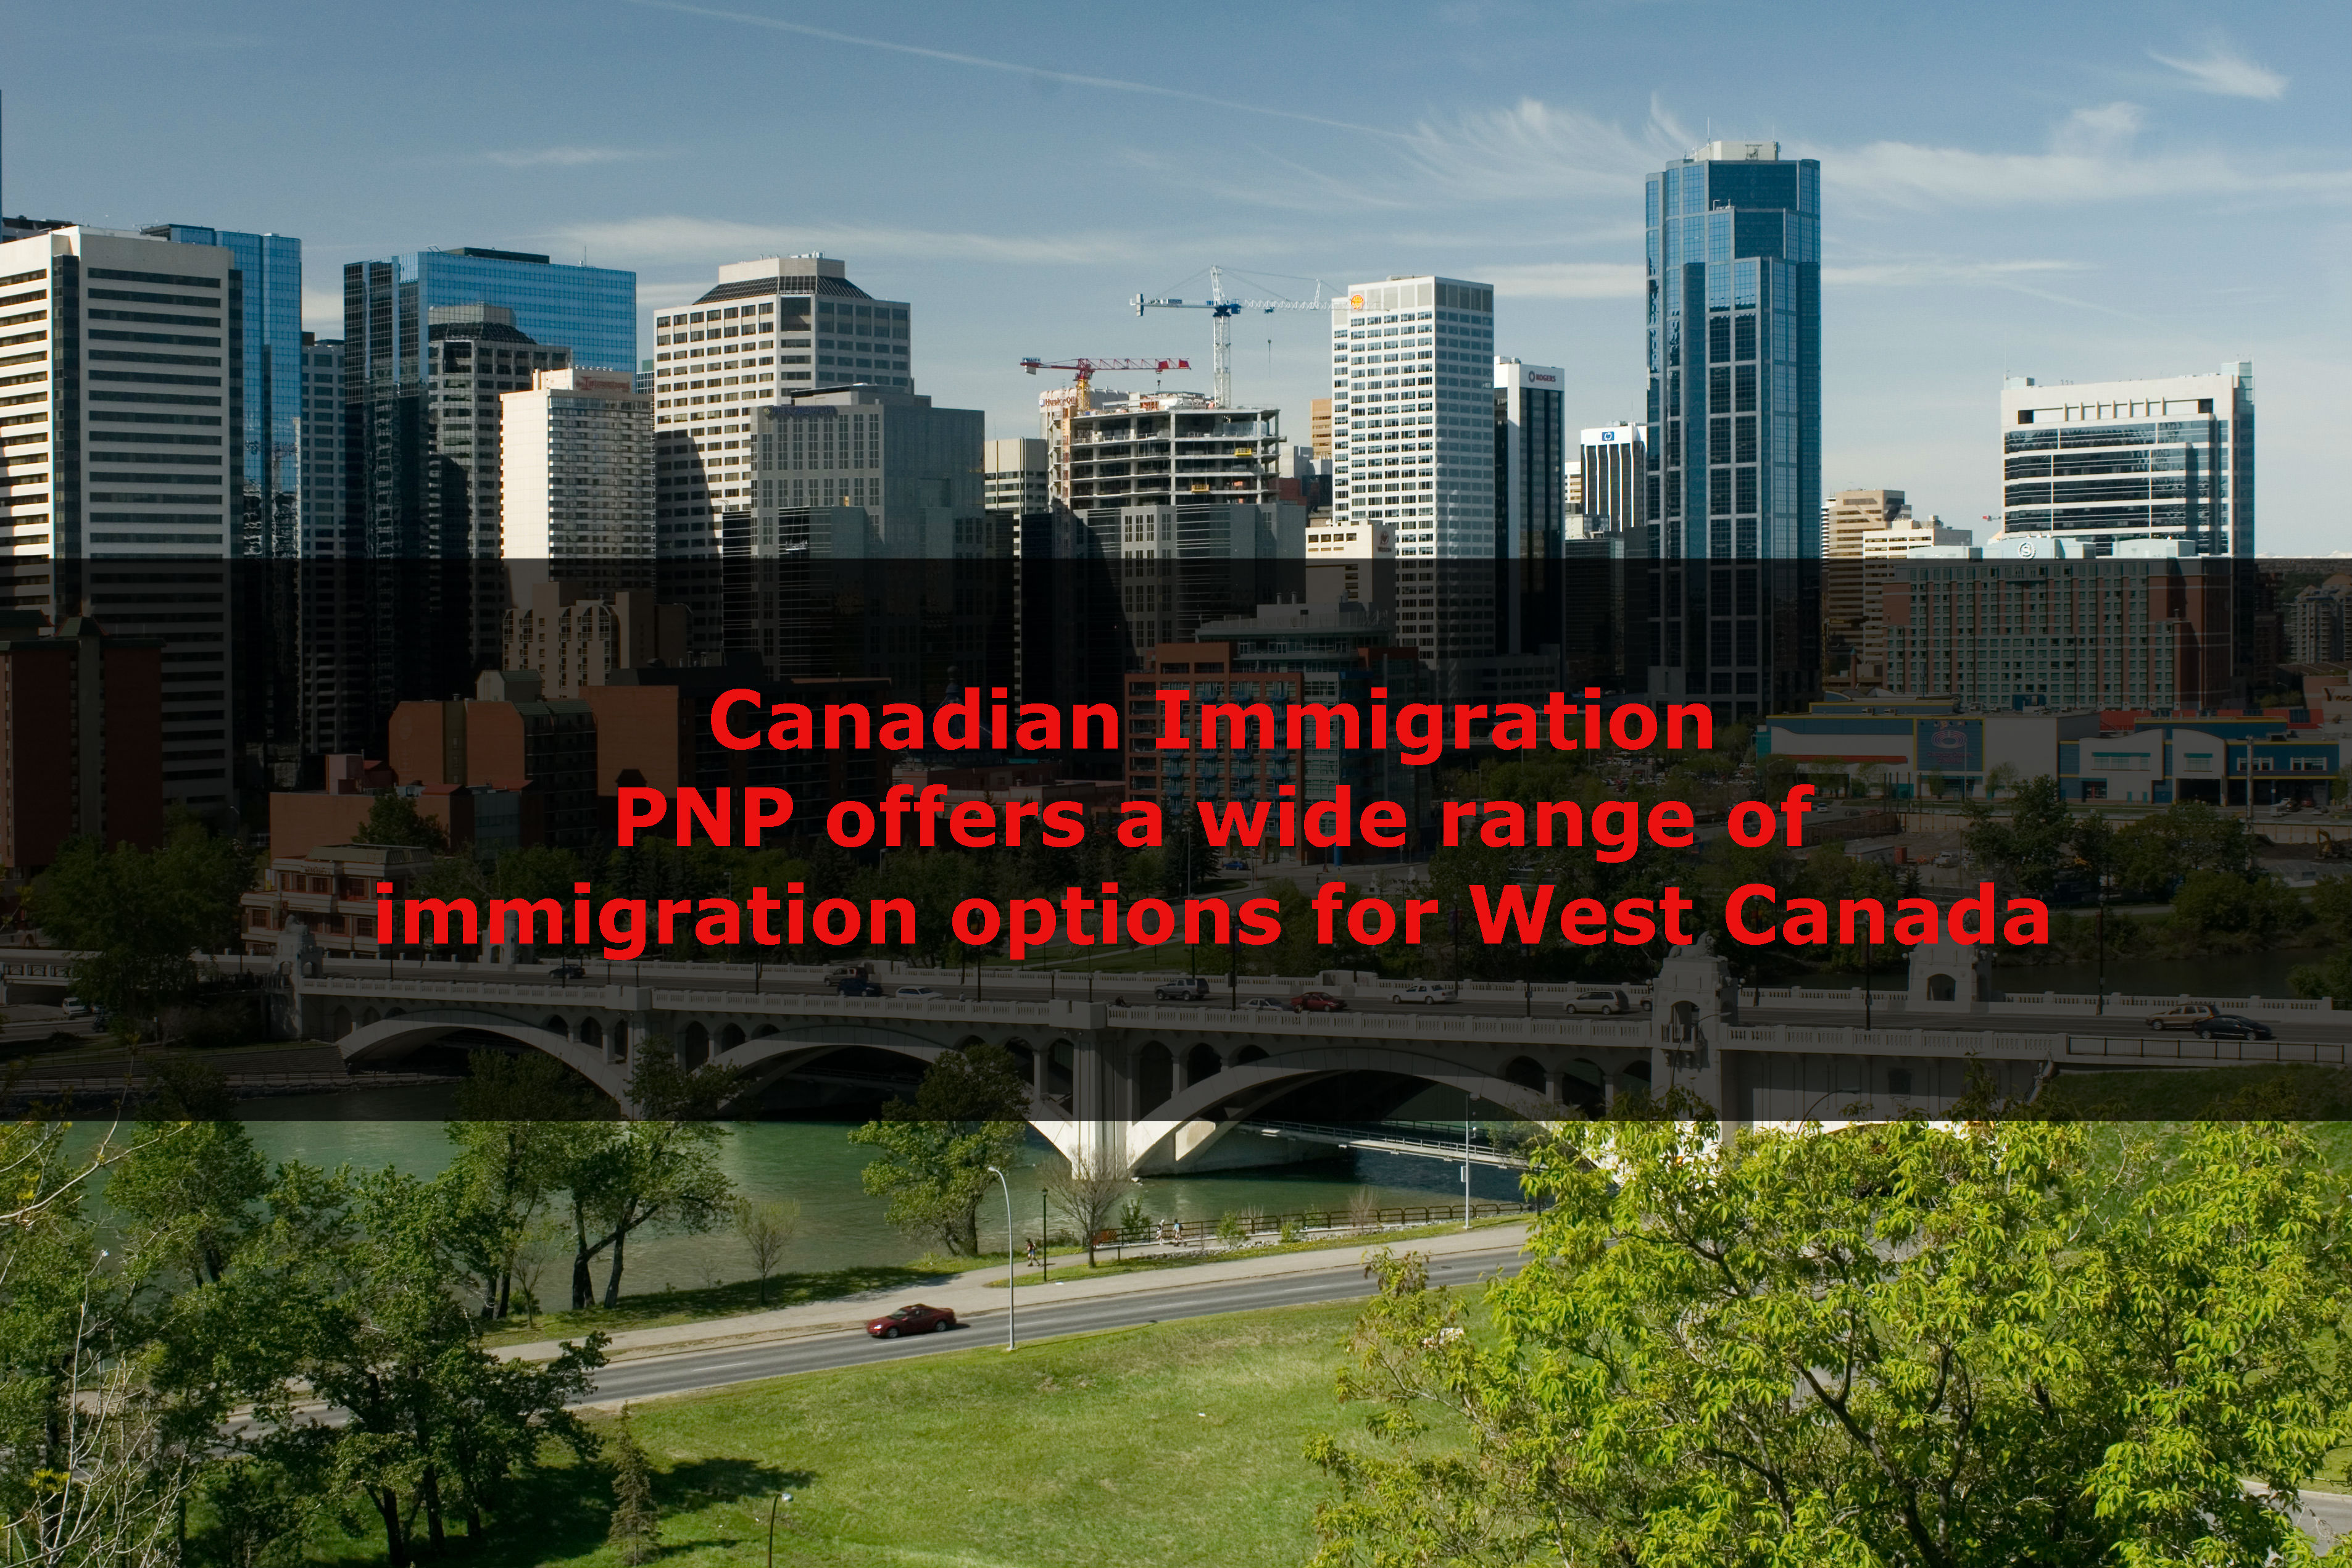 PNP offers a wide range of immigration options for West Canada